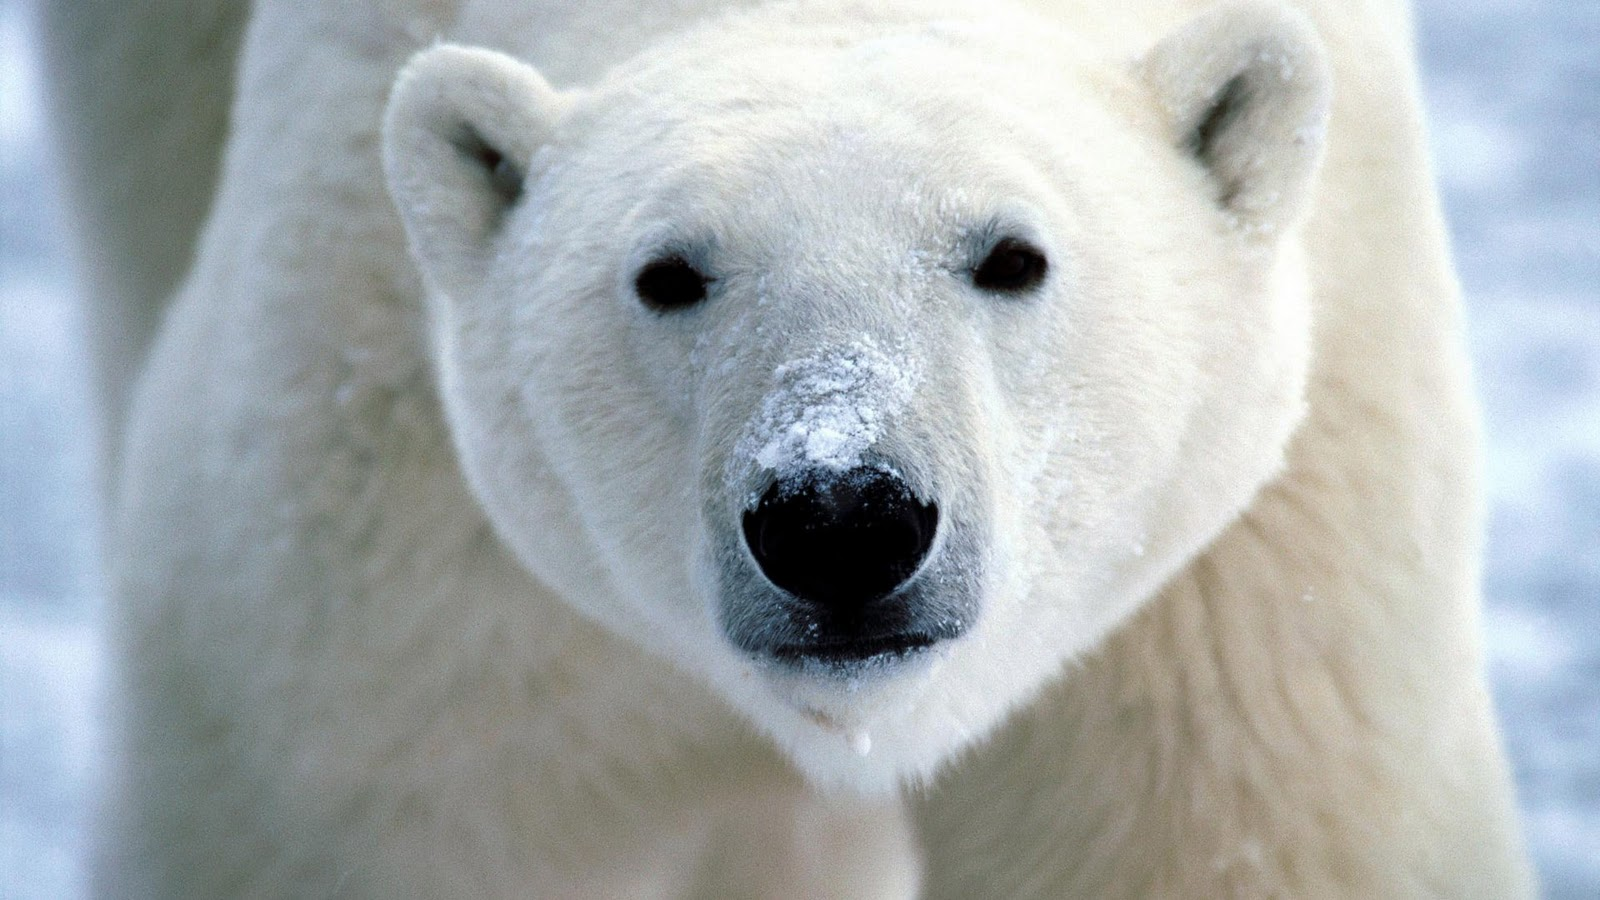 http://3.bp.blogspot.com/-_Gbo879nyhA/TvsZwBoaChI/AAAAAAAAAFM/1Il3JOsV0gY/s1600/polar-bear-arctic-wallpaper-in-HD-Resolution.jpg